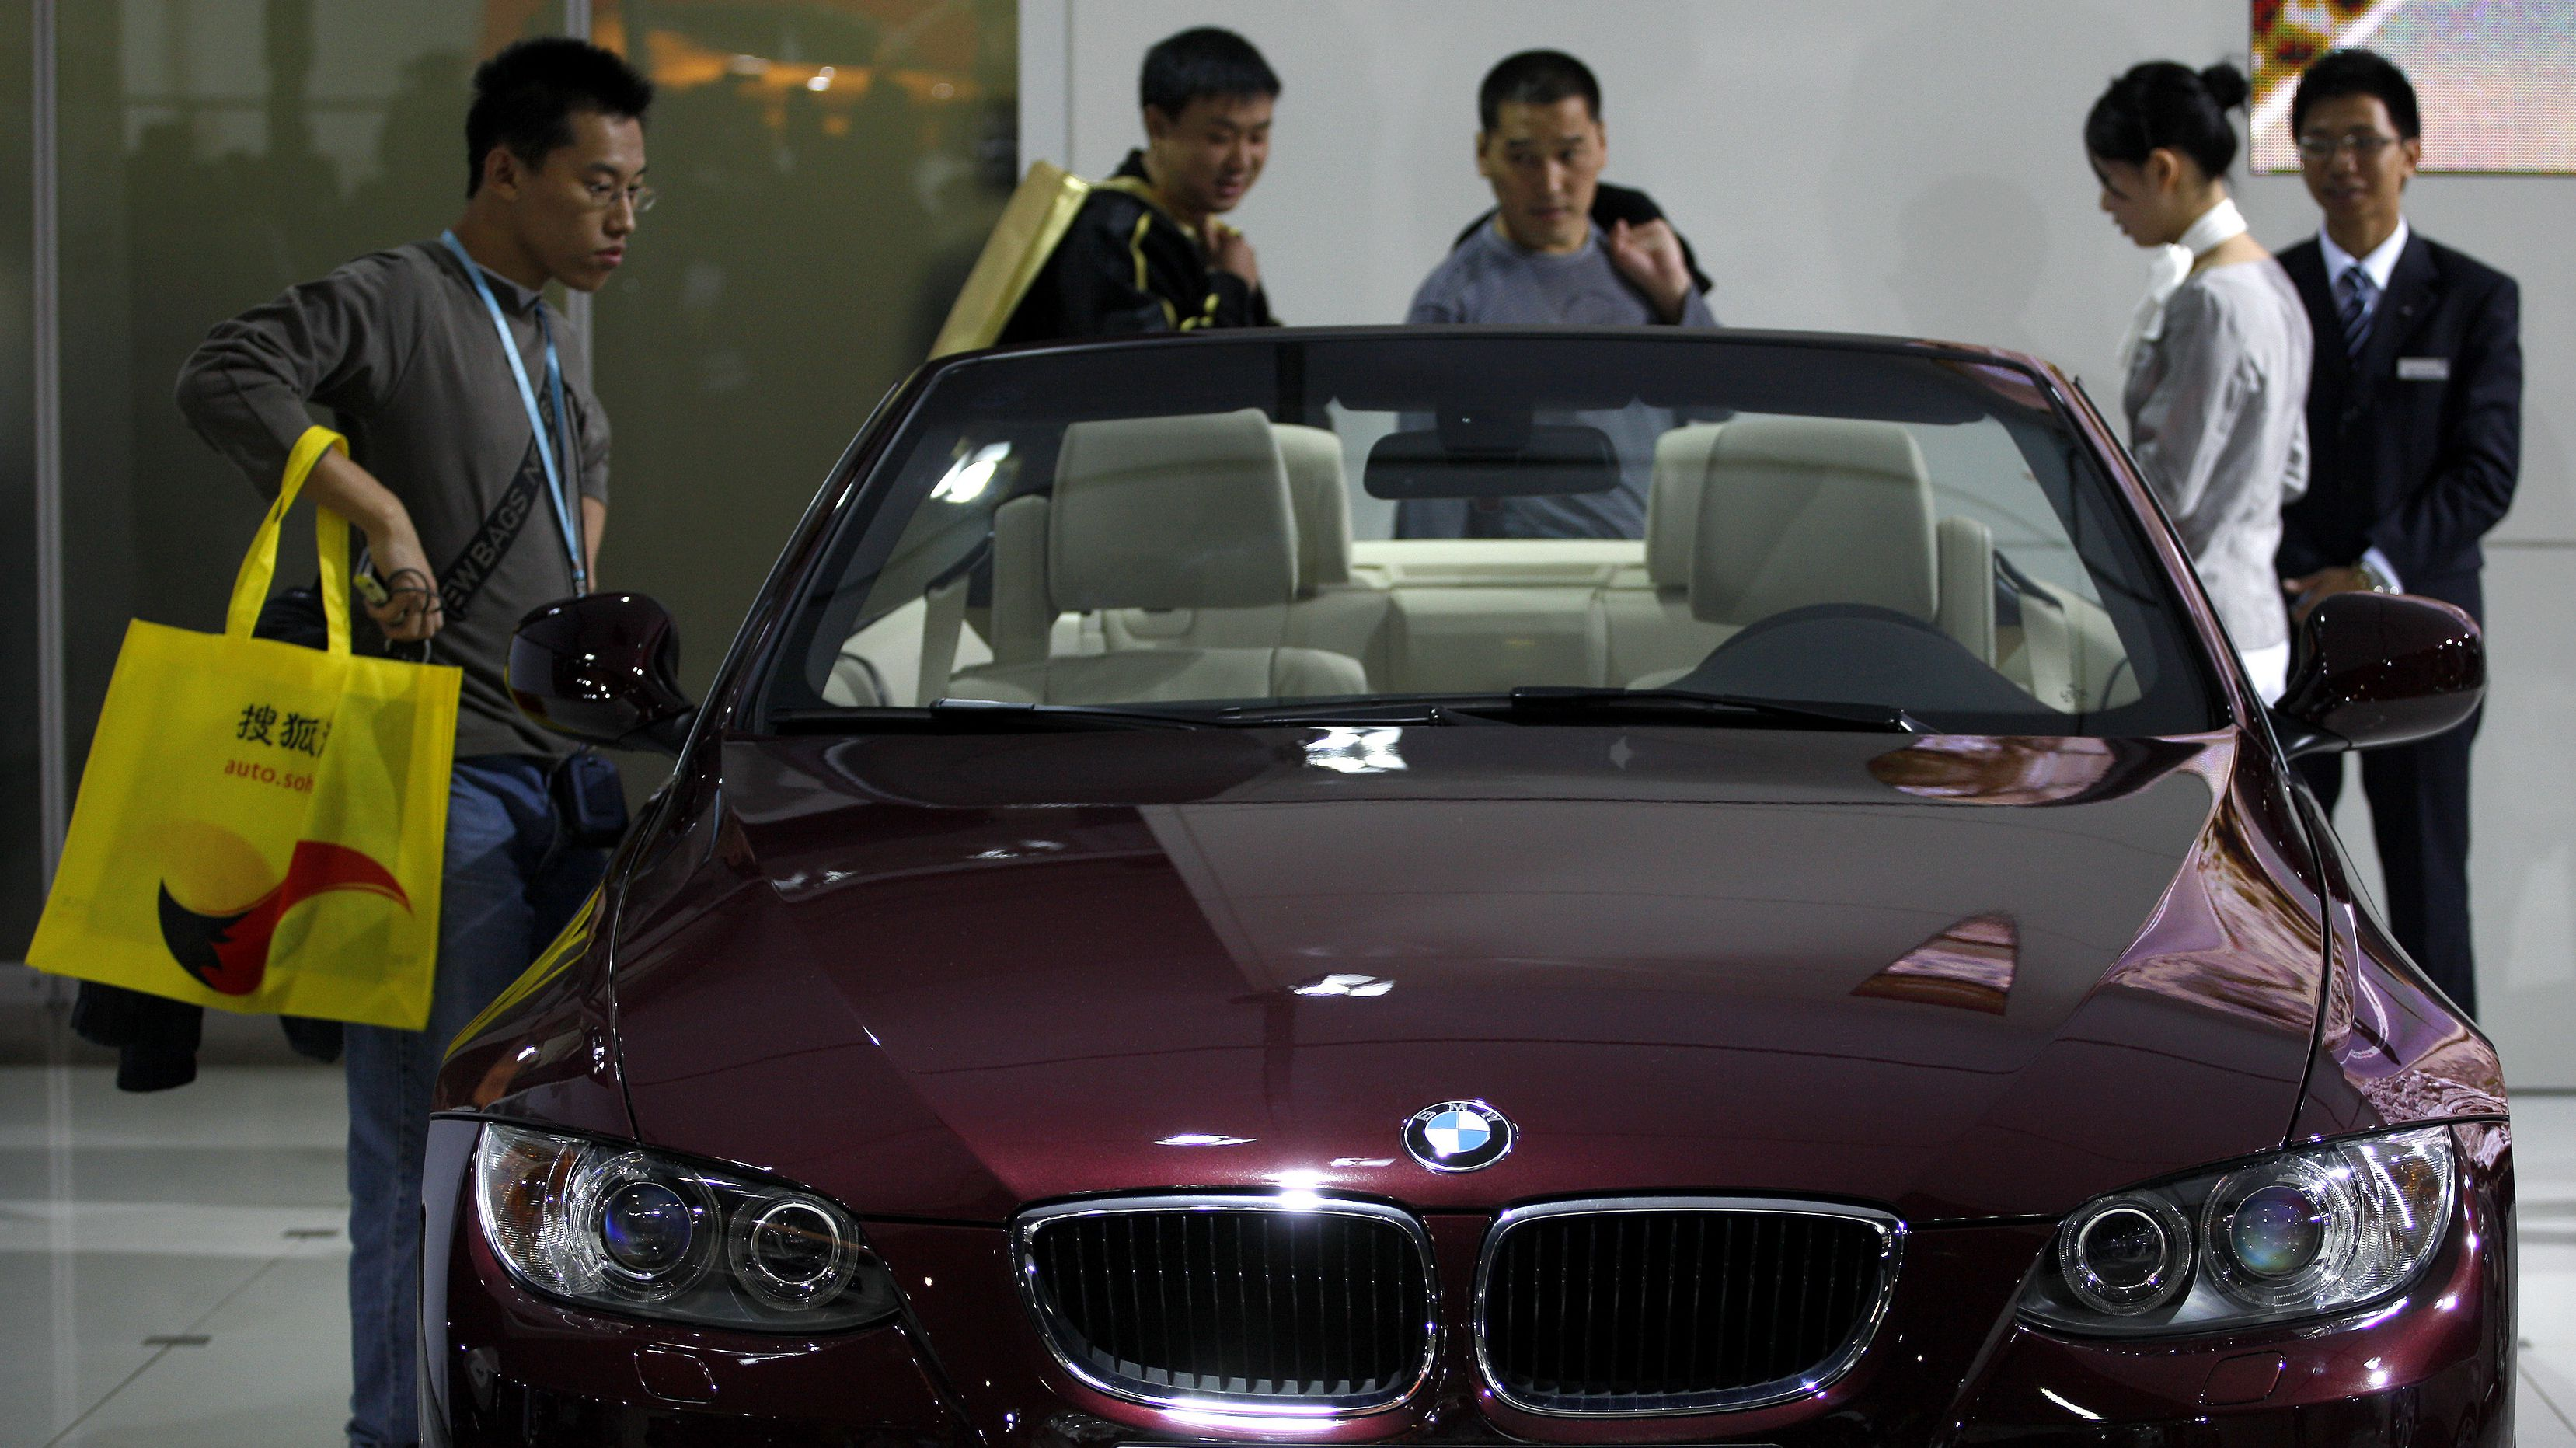 Visitors look at a BMW 320i convertible car at the Guangzhou Autoshow November 23, 2009. China's car makers hope Beijing will renew strong economic incentives that propelled China's car sales to record levels this year even in the face of the global downturn. REUTERS/Tyrone Siu